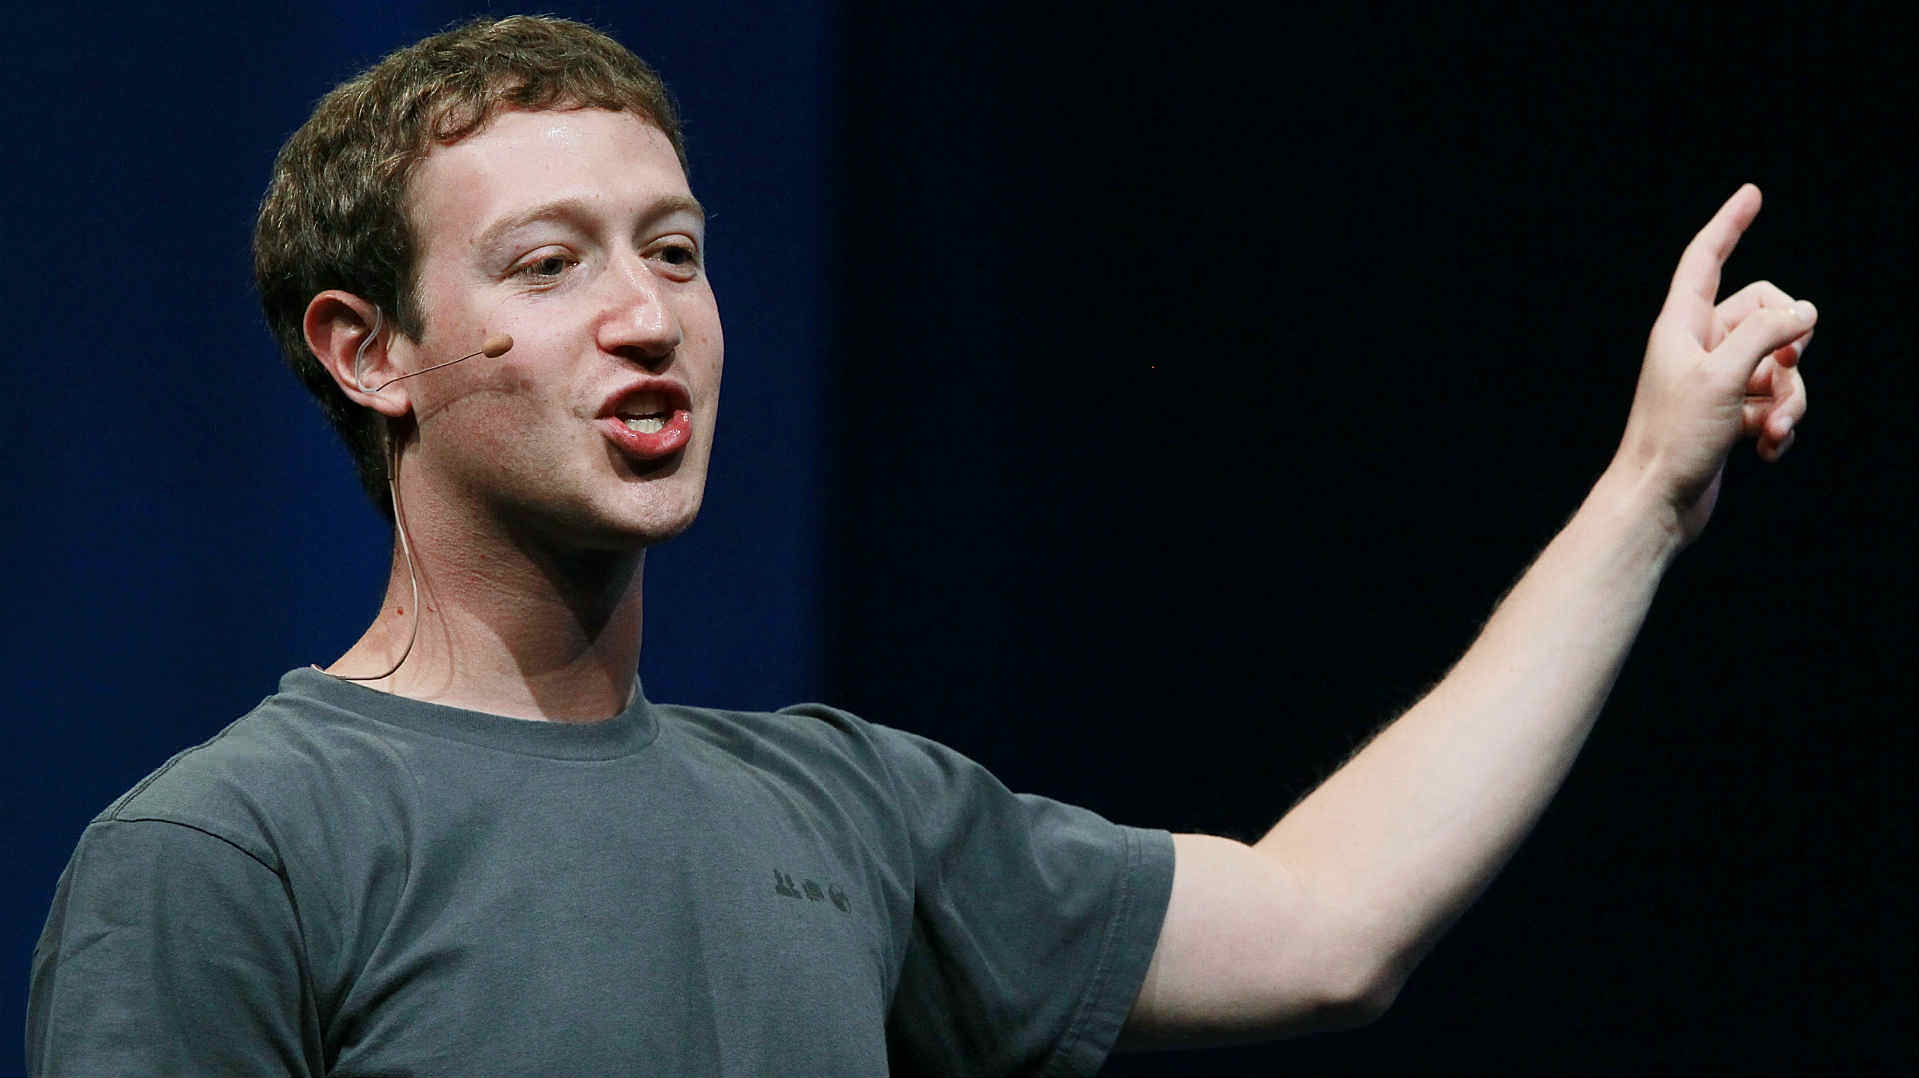 http://guardianlv.com/wp-content/uploads/2014/02/Mark-Zuckerberg1.jpg